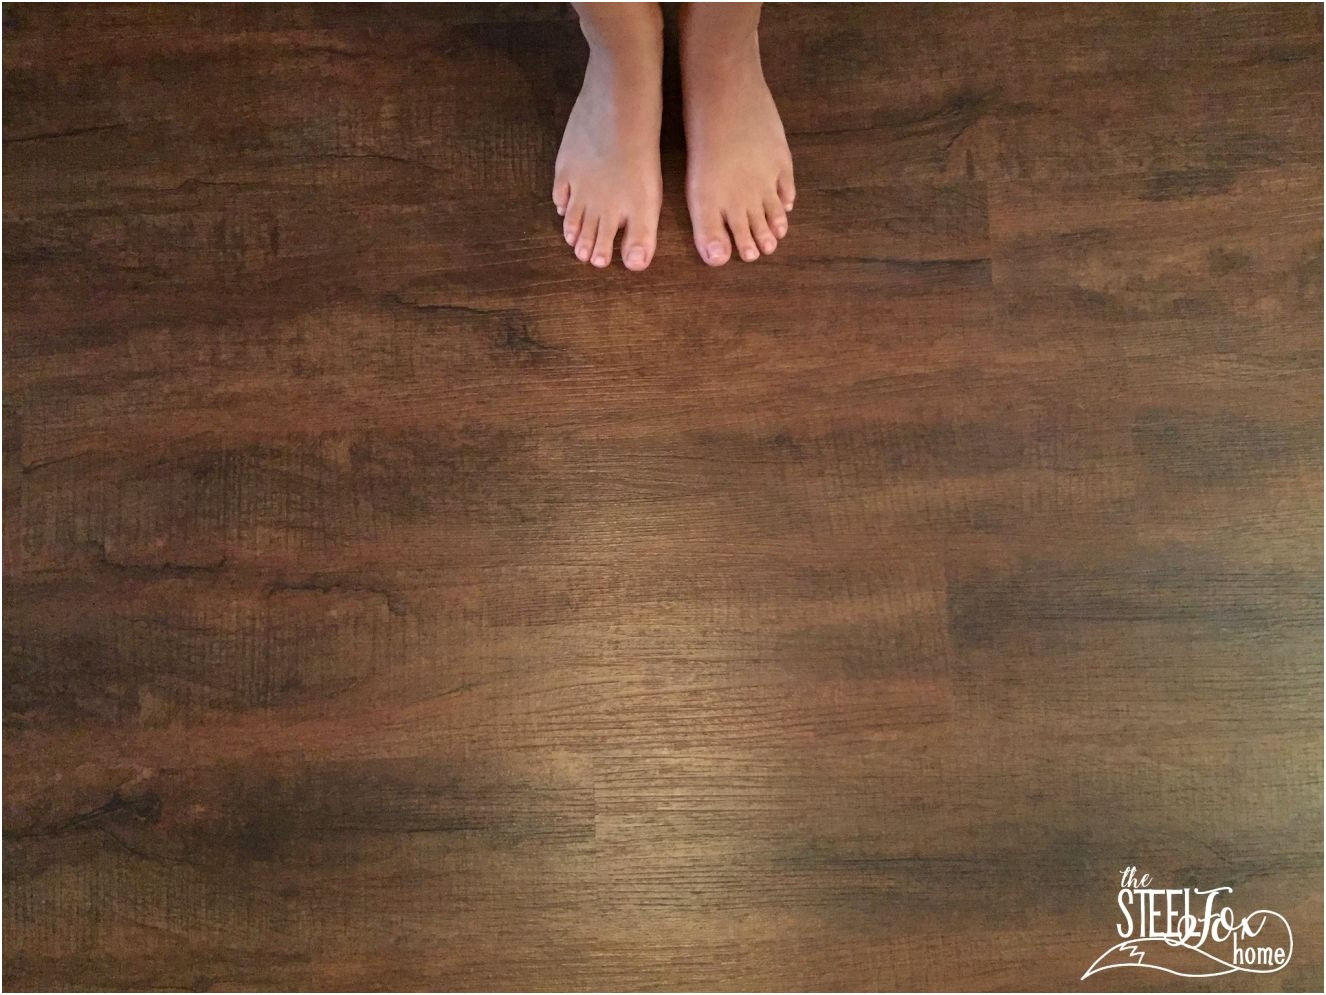 mohawk hardwood flooring installation of how much it cost to install wood flooring photographies hardwood with how much it cost to install wood flooring photographies luxury vinyl plank wood flooring whole house